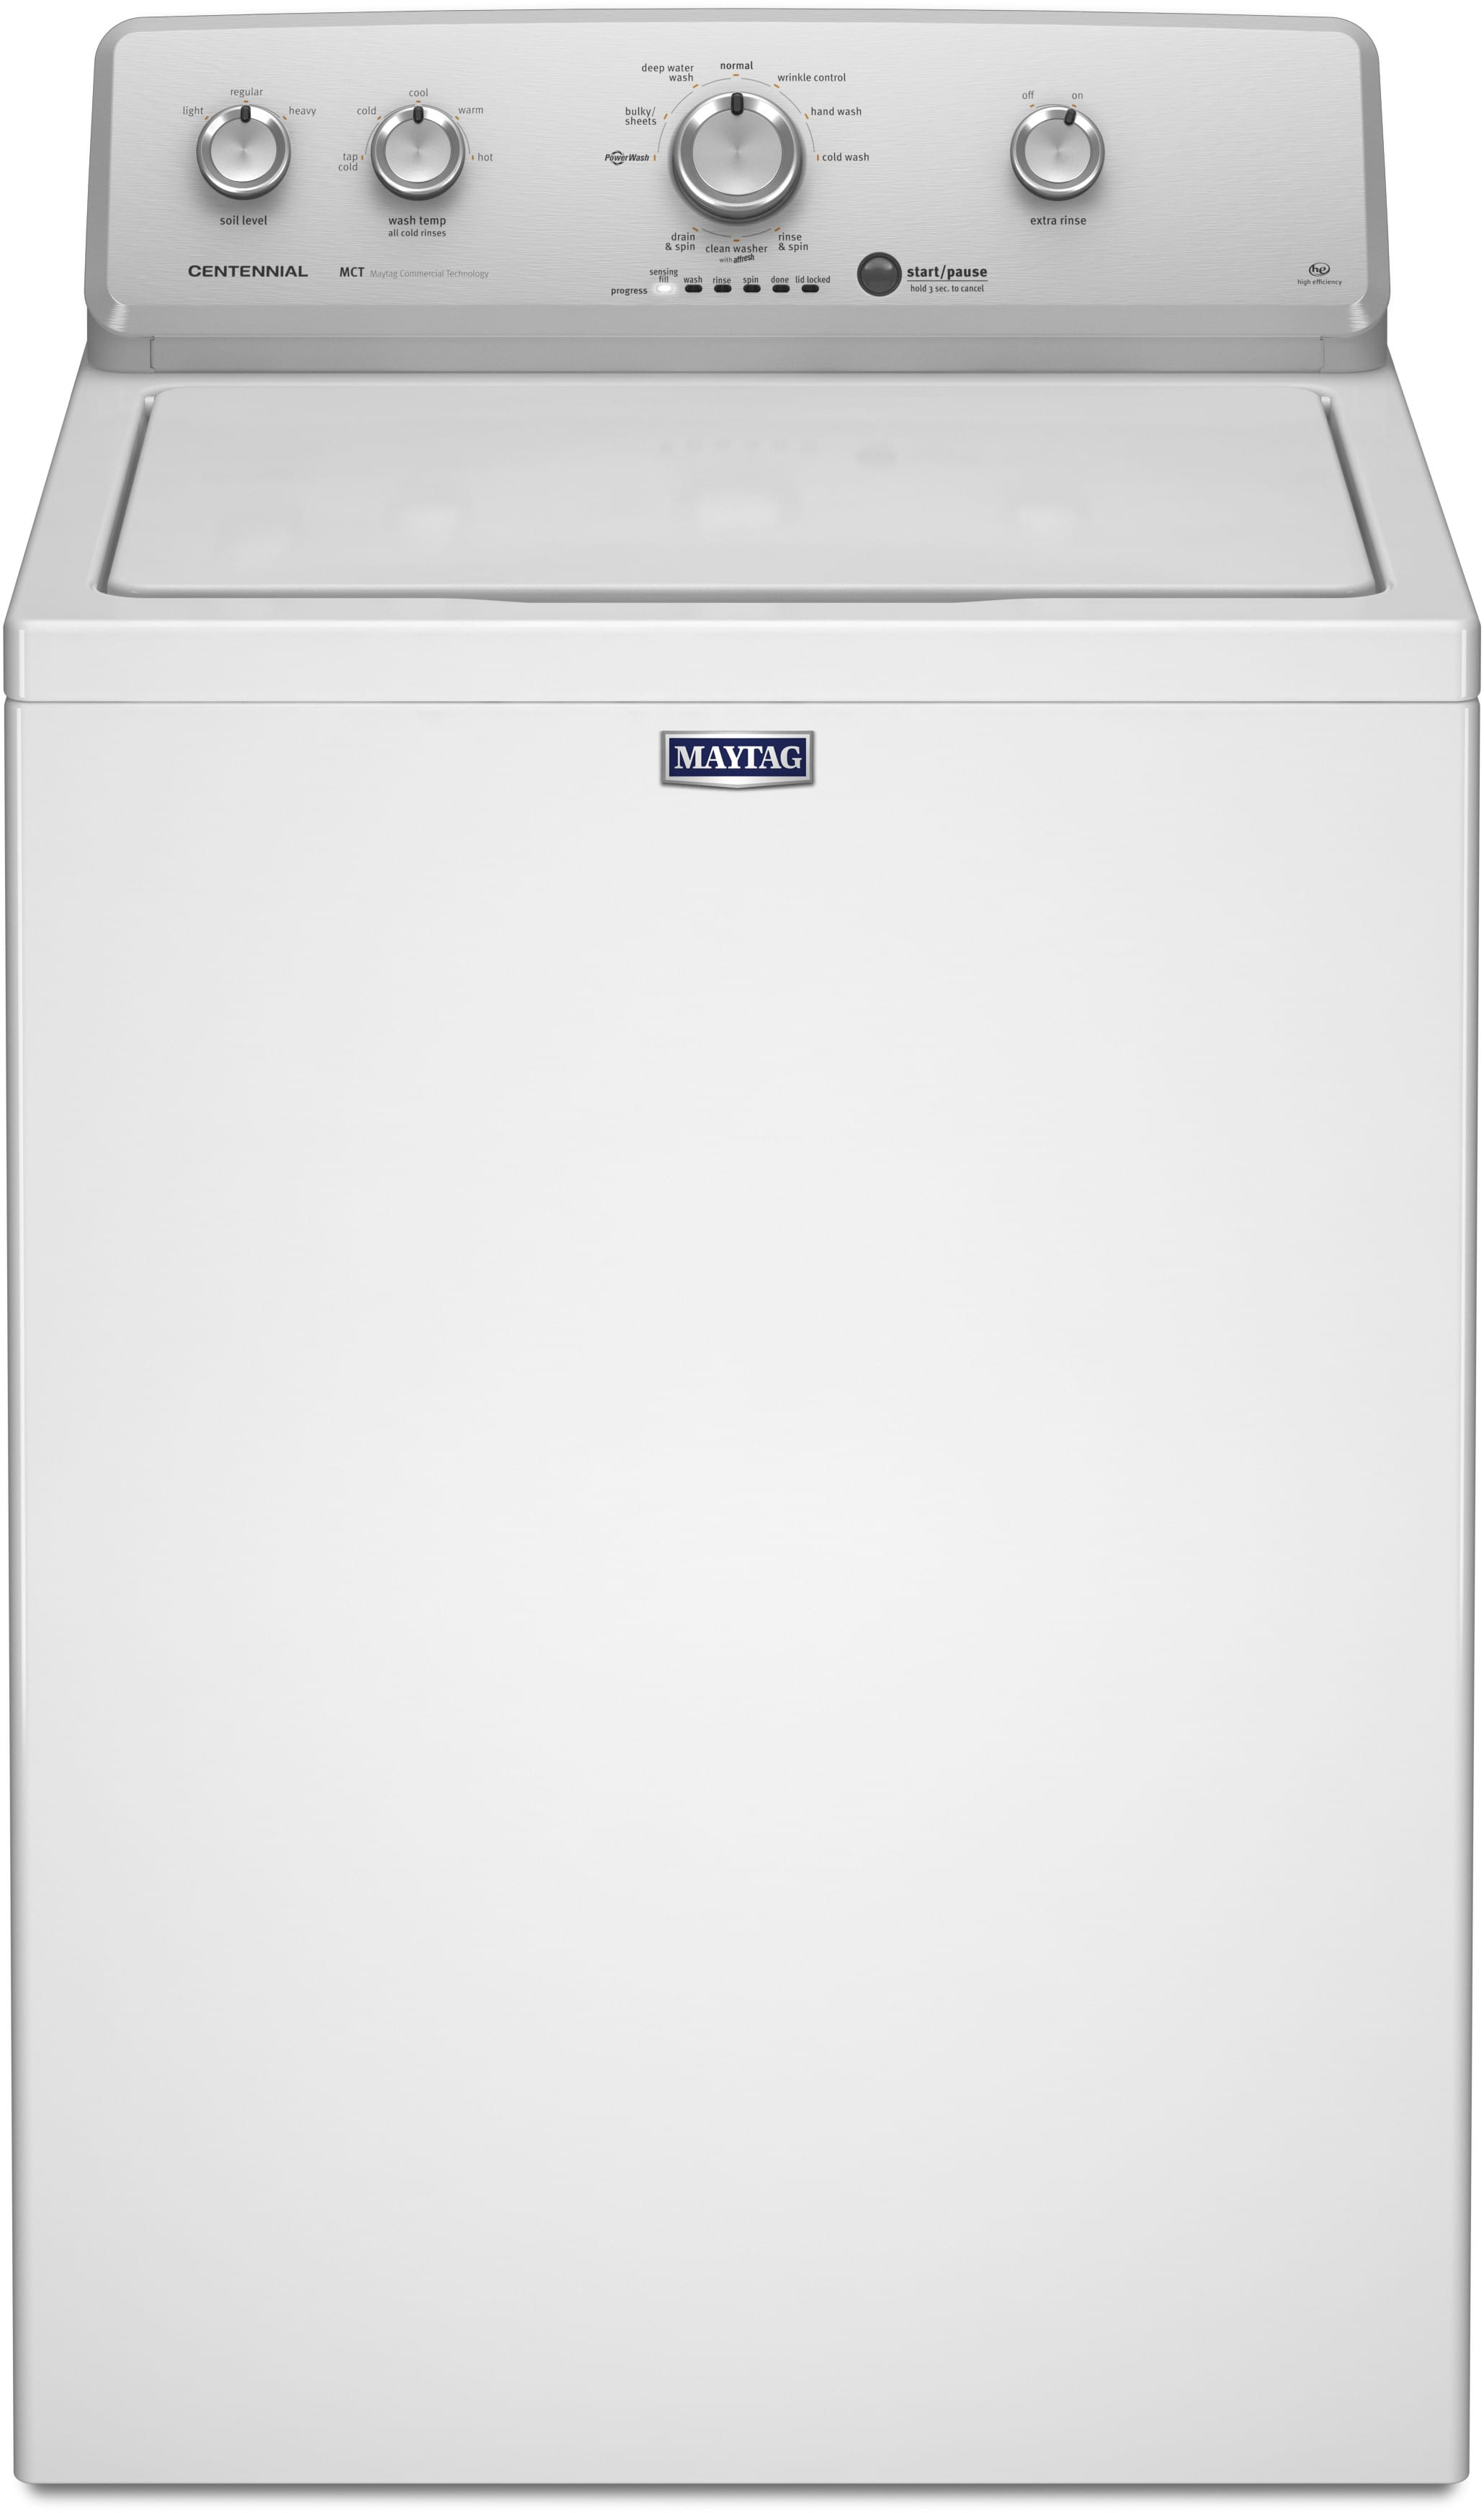 Maytag Mvwc215ew 27 Inch 3 5 Cu Ft Top Load Washer With